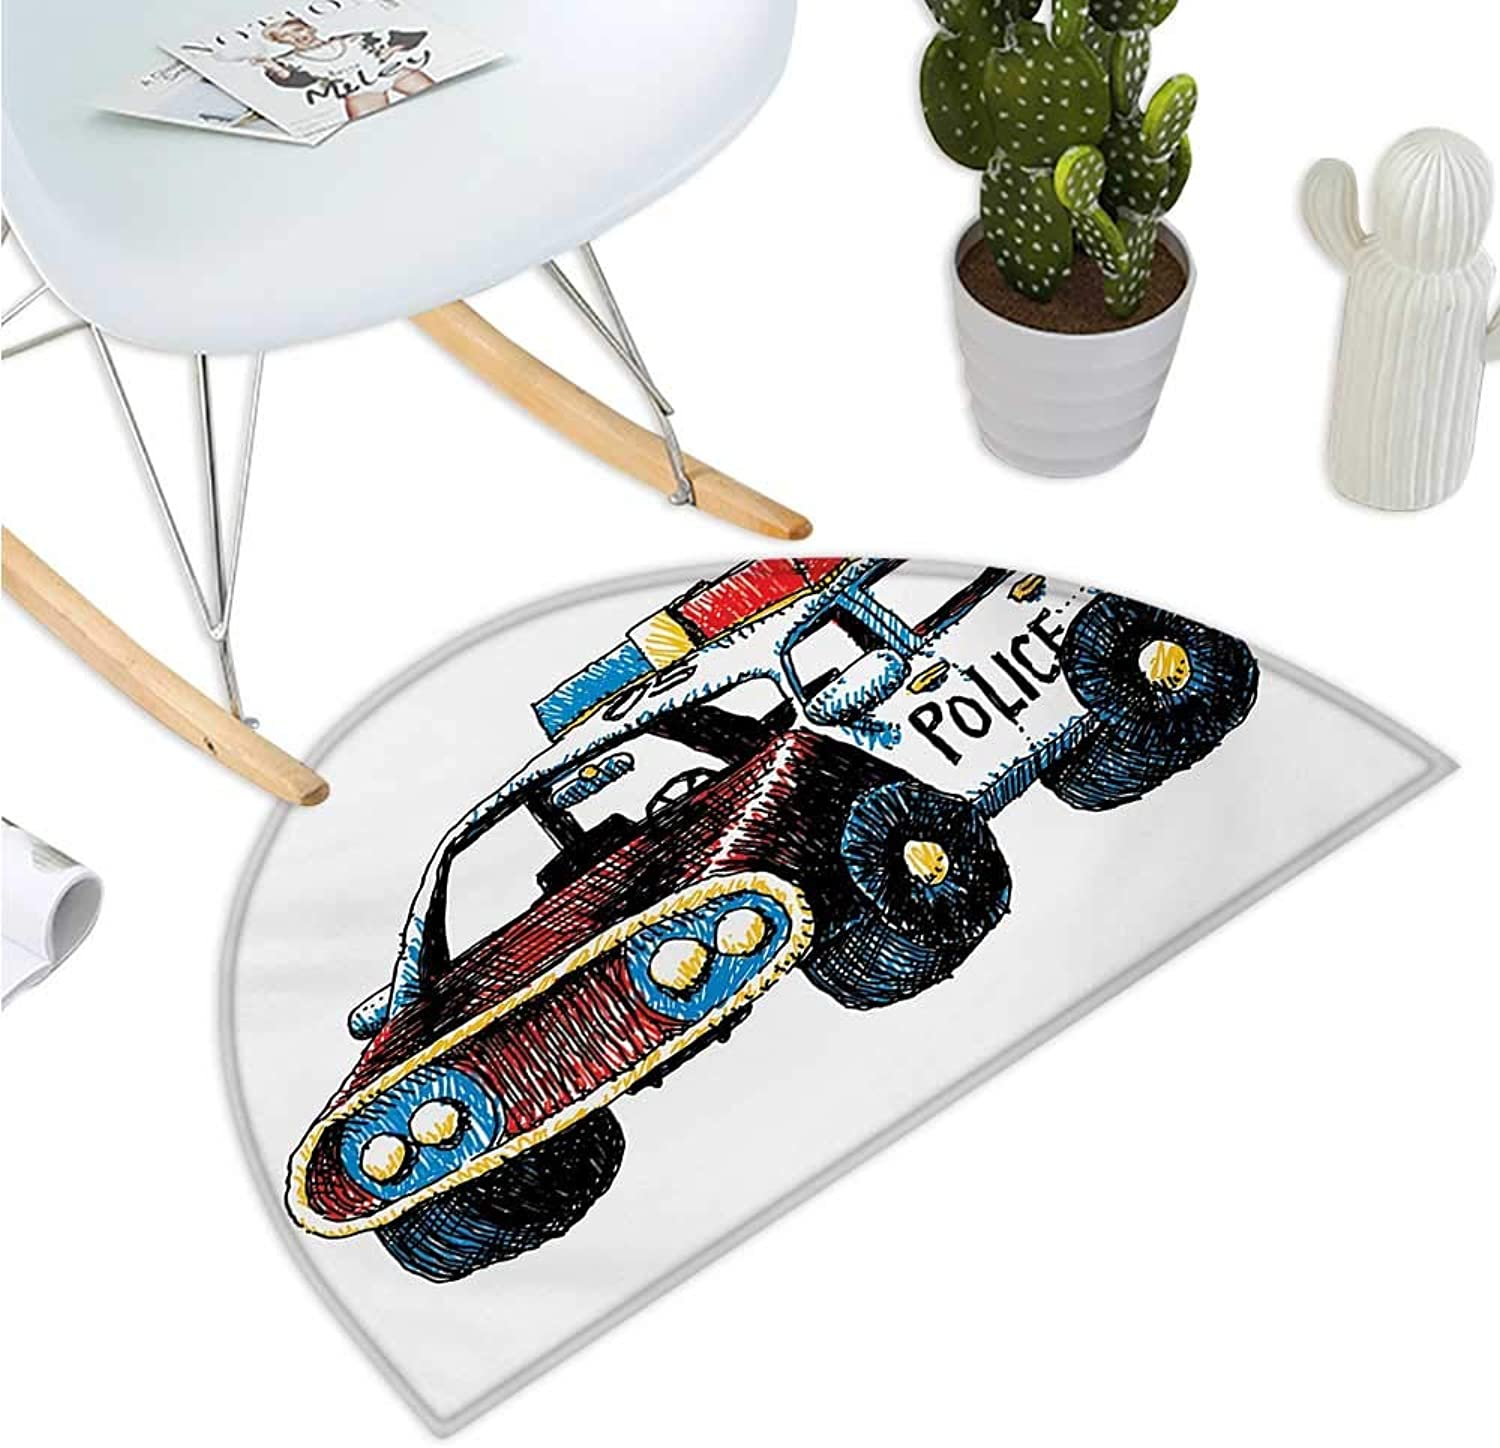 Police Semicircular Cushion Cartoon Hand Drawn Police Car Unusual Design with Sketchy coloring Print Bathroom Mat H 51.1  xD 76.7  Red Yellow and bluee